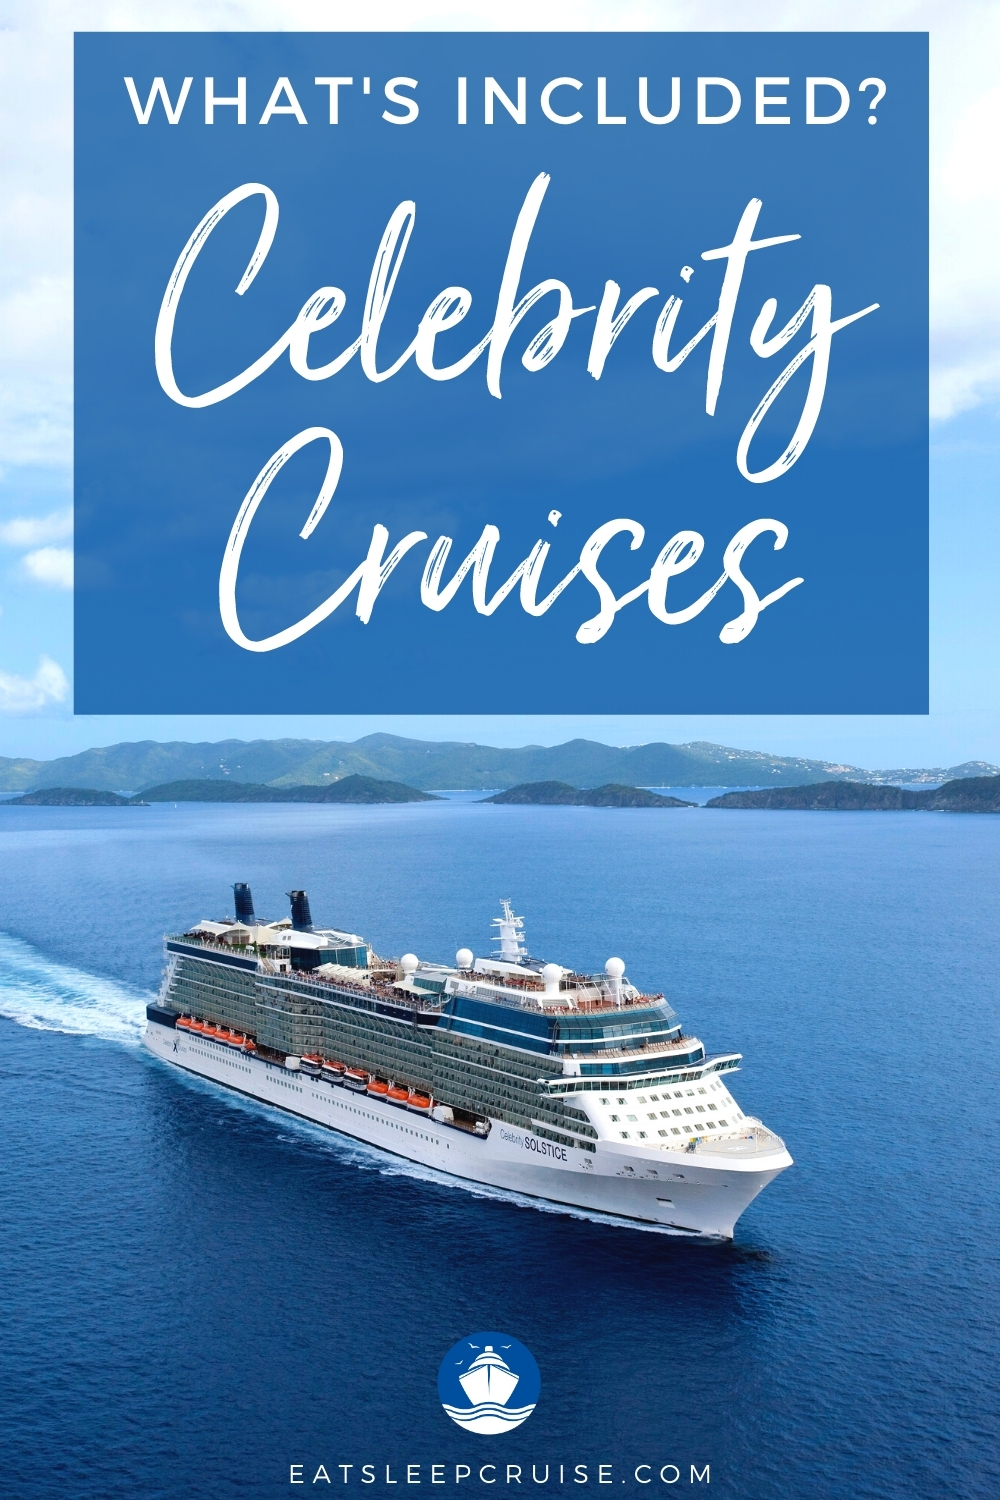 What's Included on Celebrity Cruises